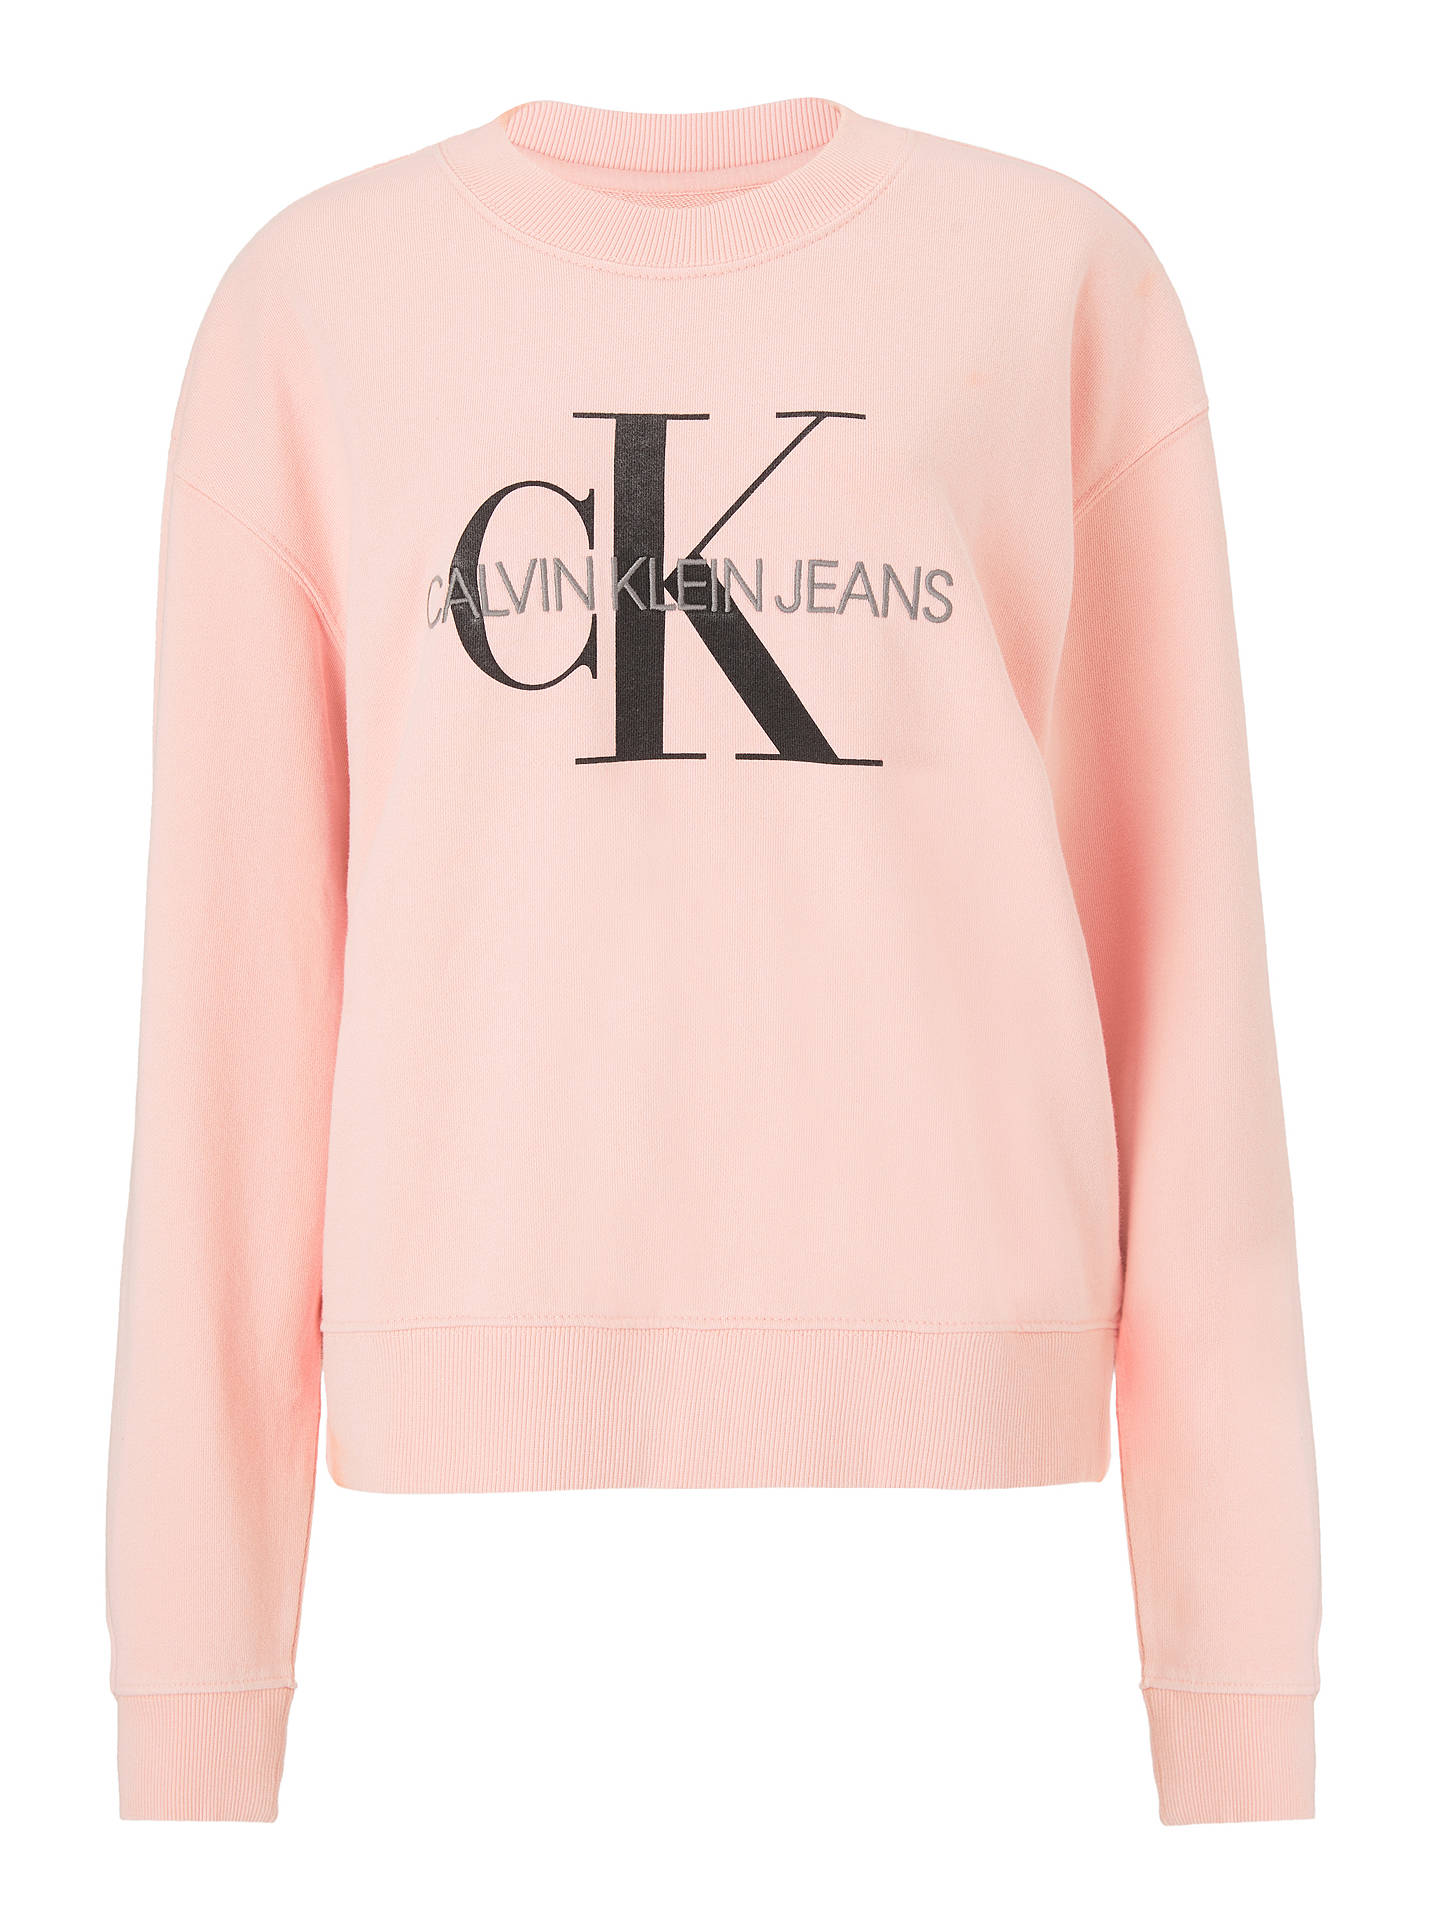 Buy Calvin Klein Core Monogram Logo Sweatshirt, Strawberry Cream, XS Online at johnlewis.com